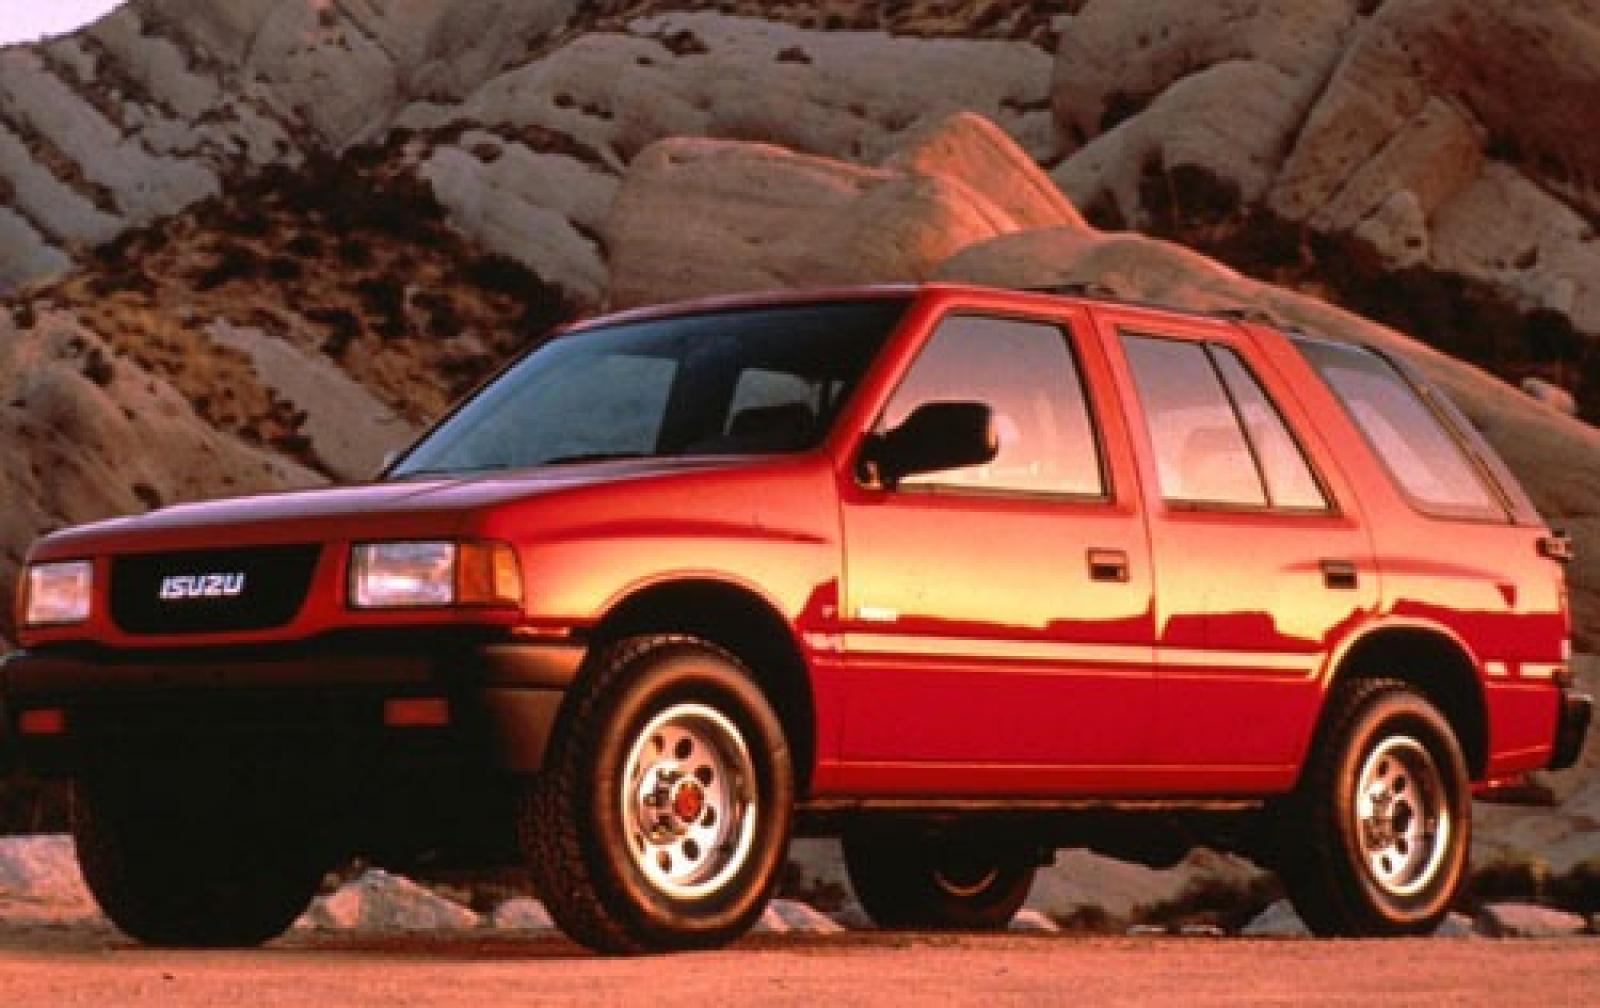 1994 isuzu rodeo information and photos zombiedrive isuzu gallery publicscrutiny Image collections